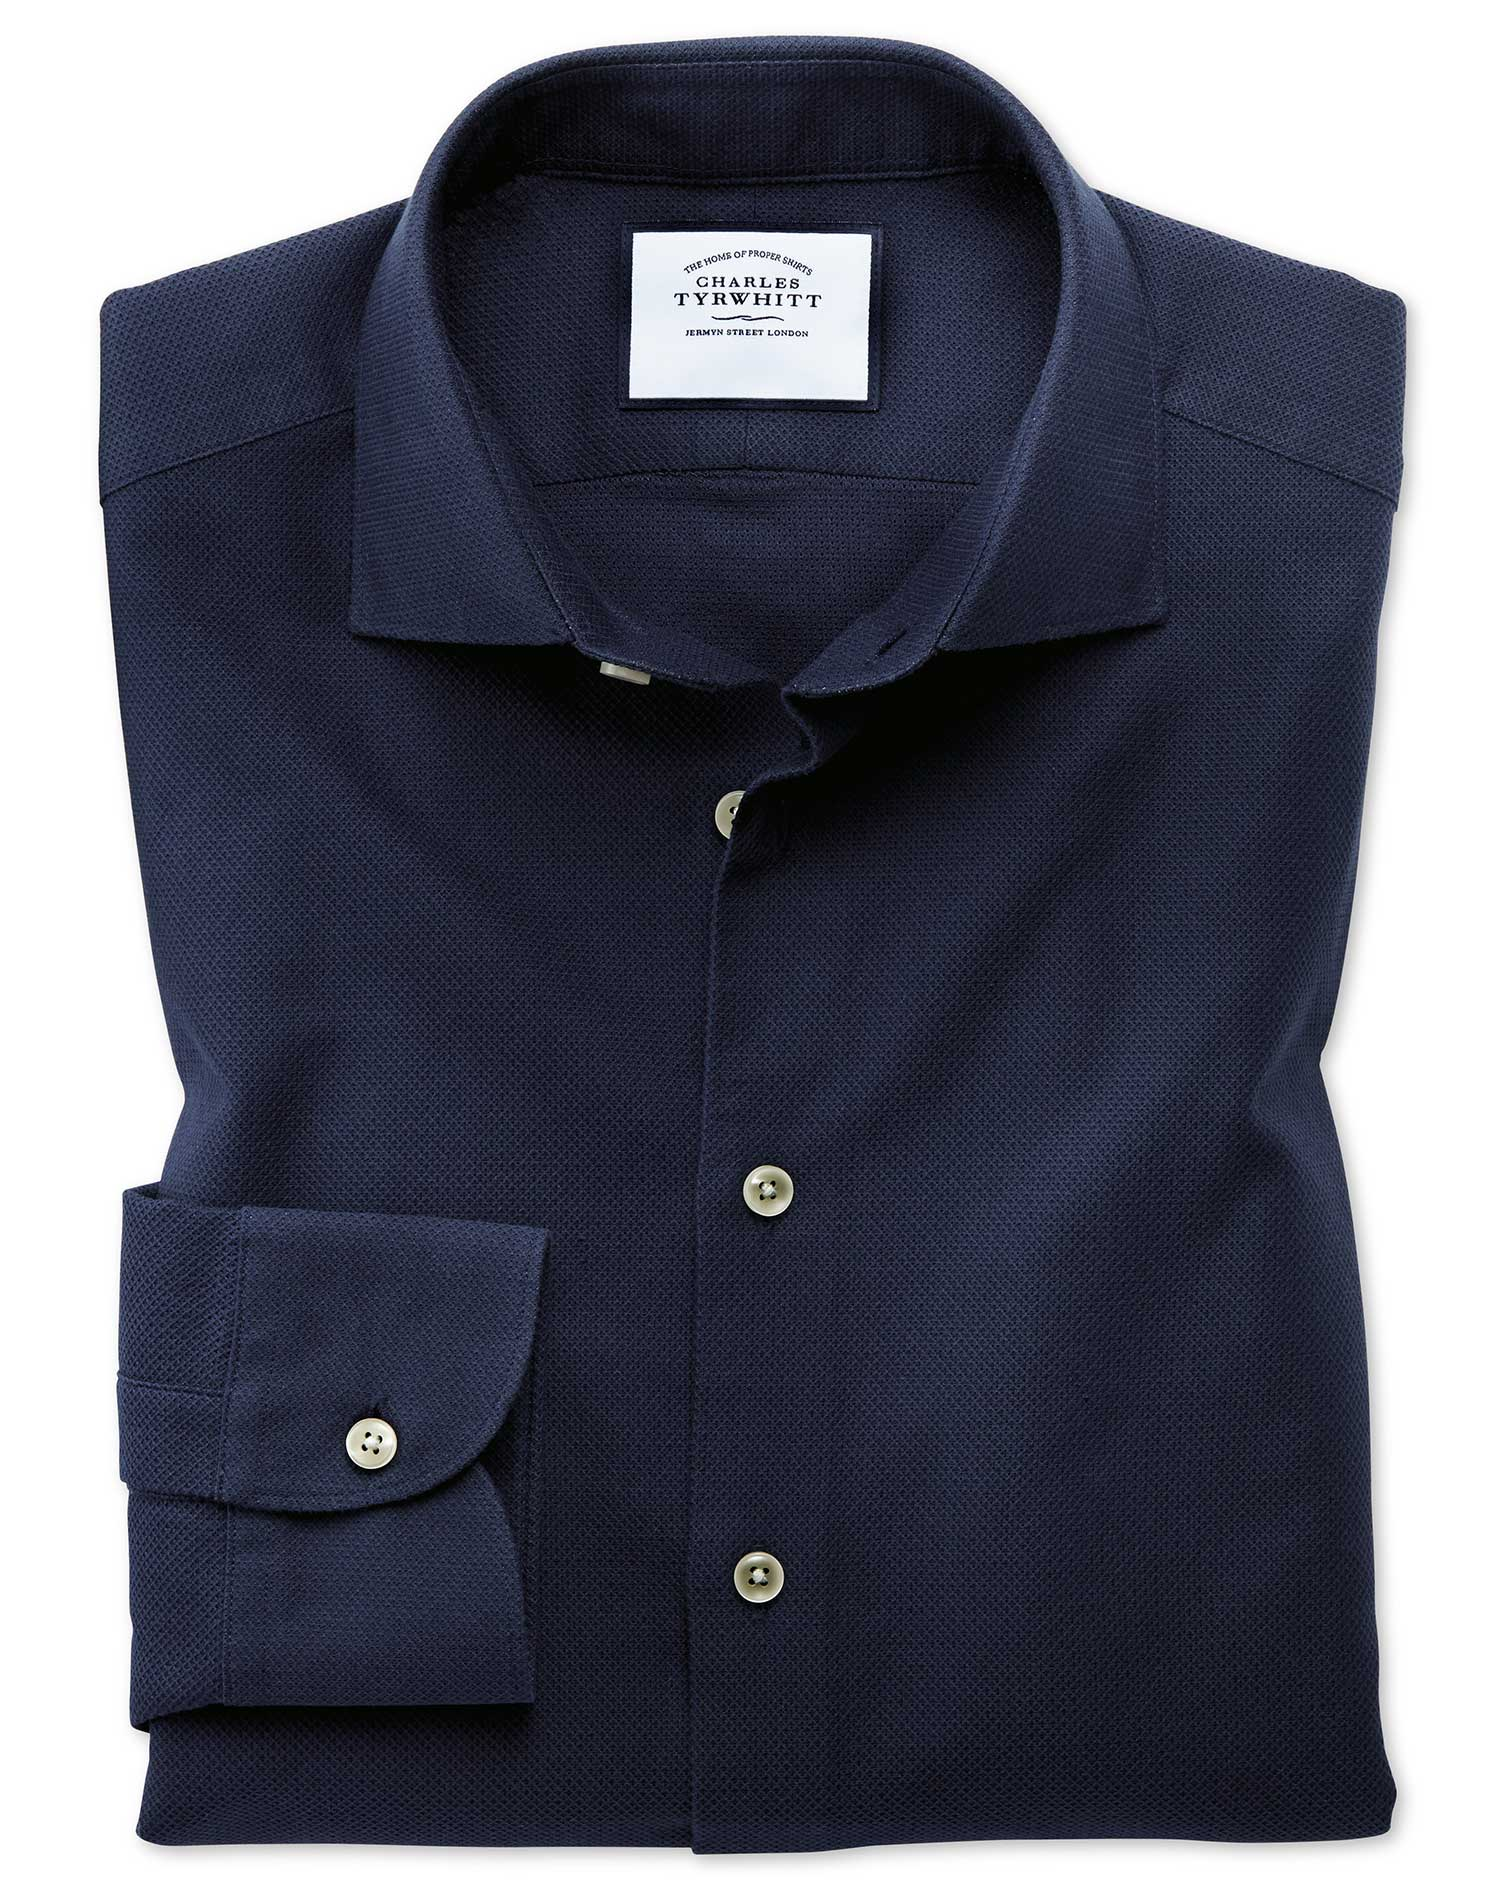 Extra Slim Fit Business Casual Leno Texture Navy Cotton Formal Shirt Single Cuff Size 16.5/35 by Cha